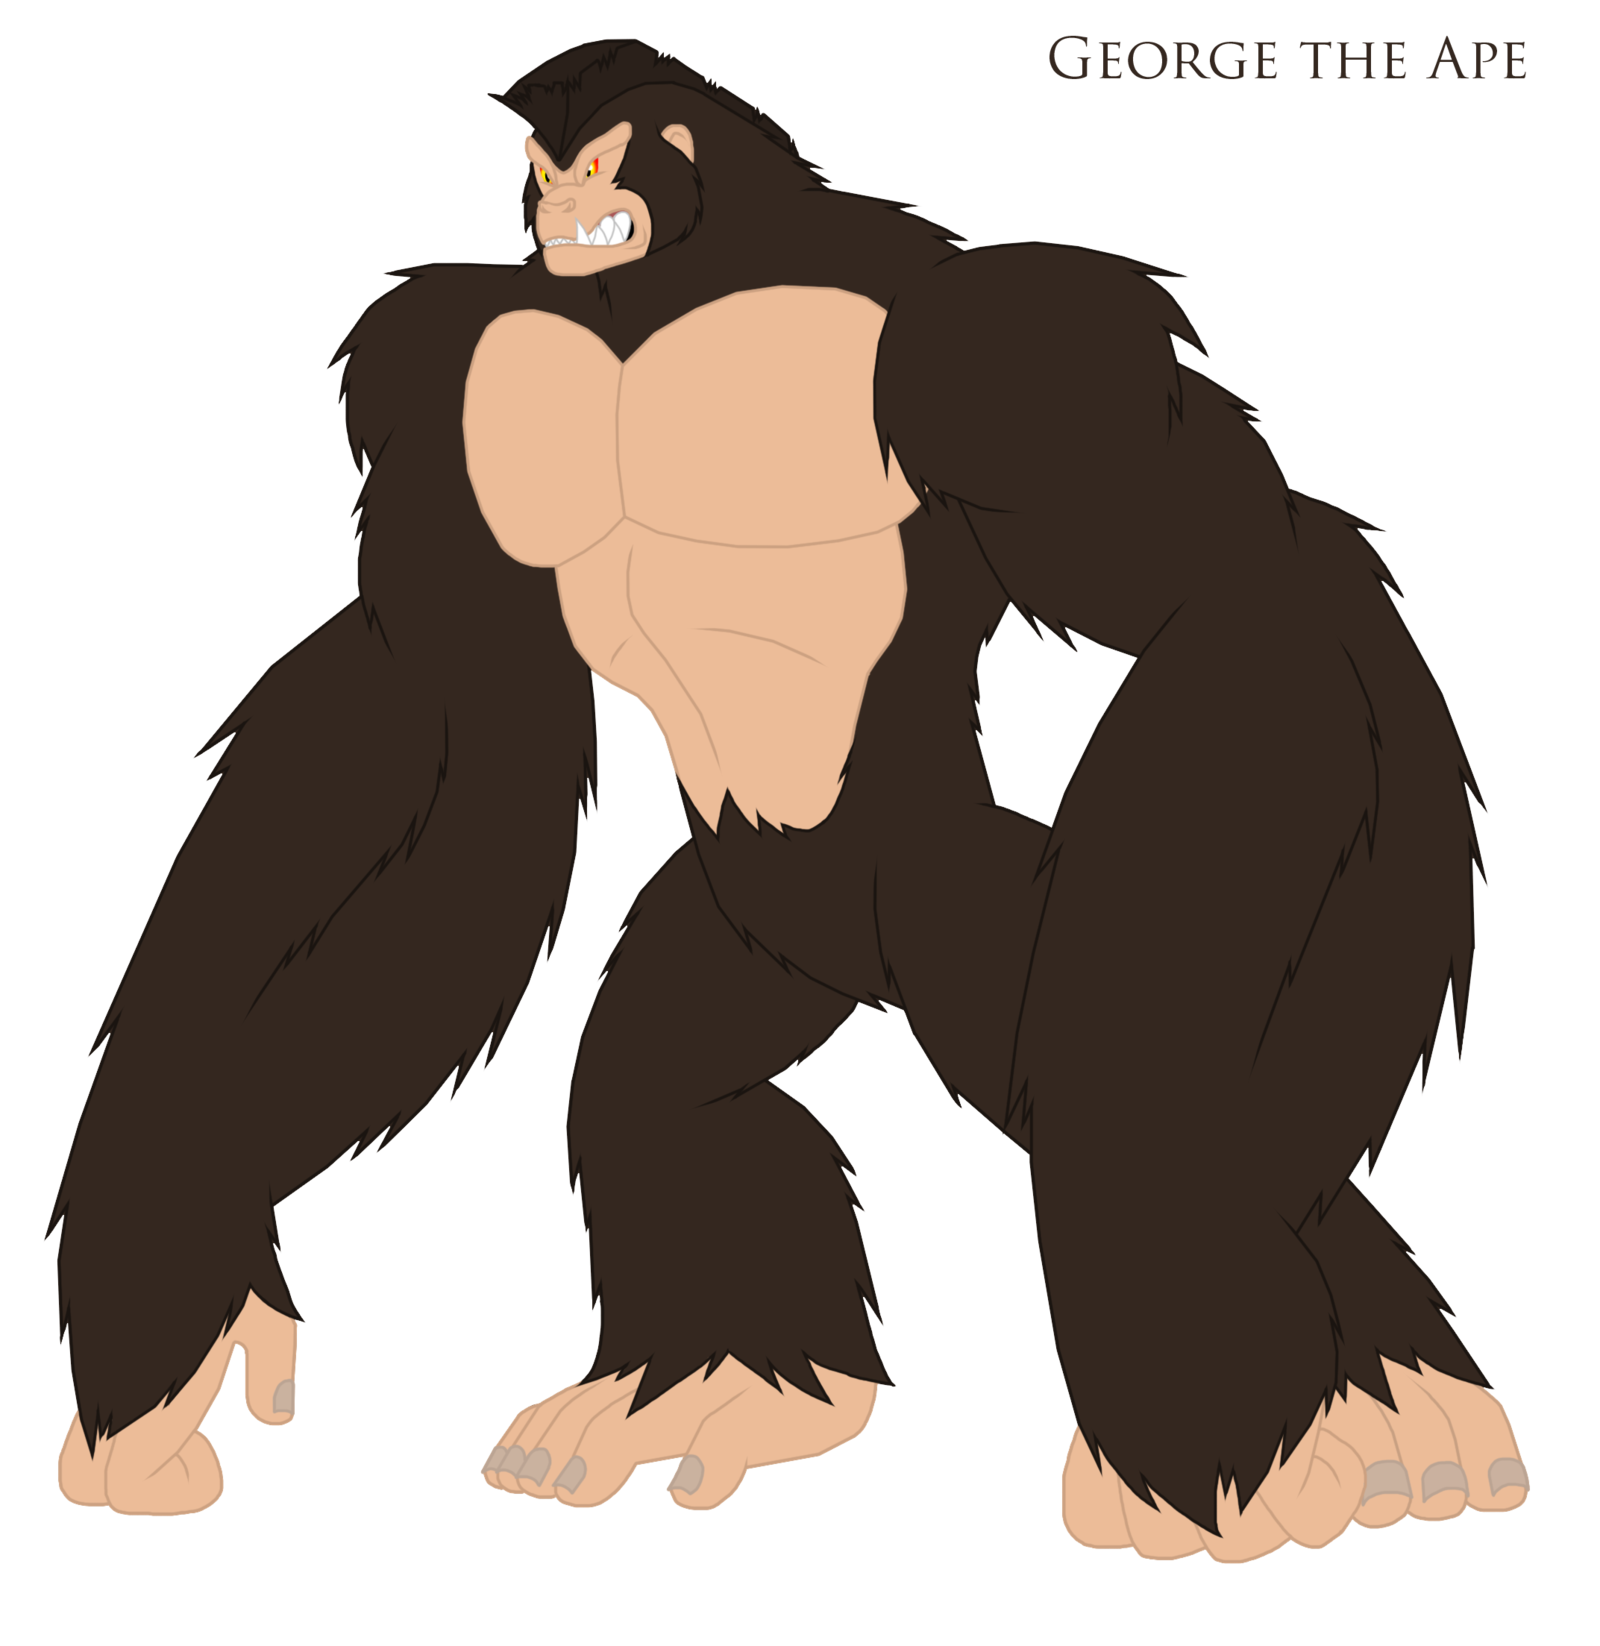 graphic free stock Ape clipart zoo gorilla. An idea for equestria